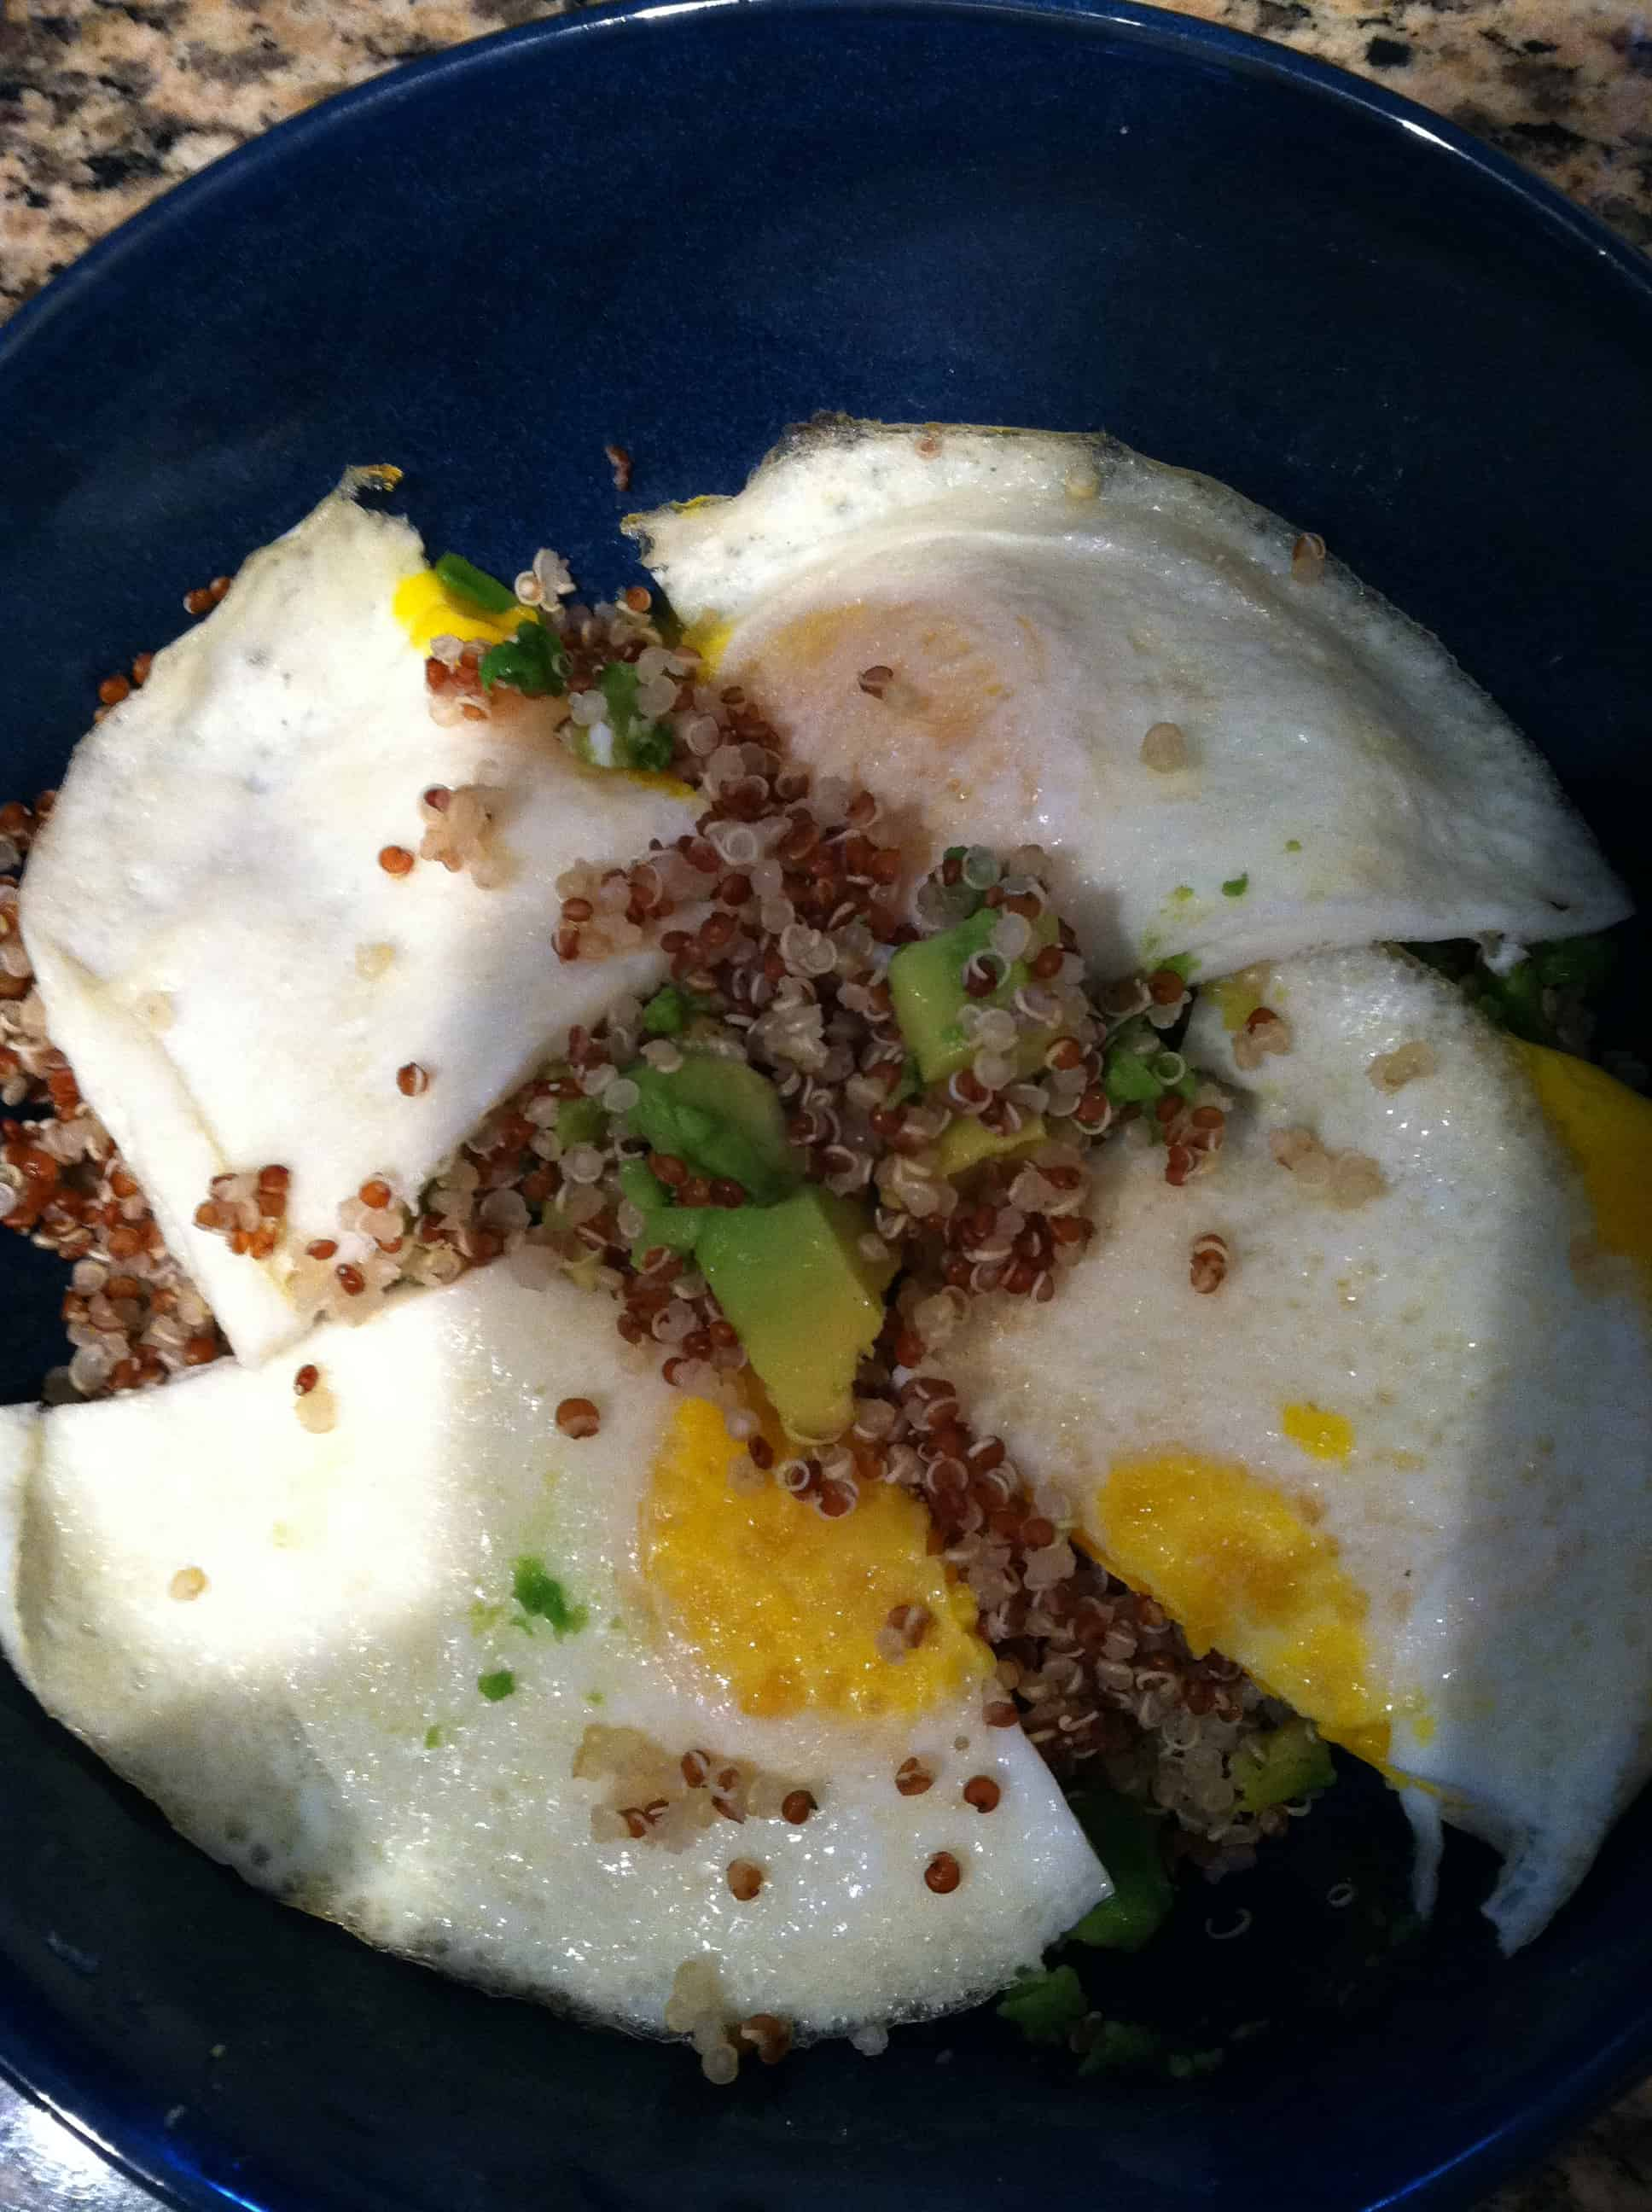 Second Breakfast: Quick Quinoa and Eggs